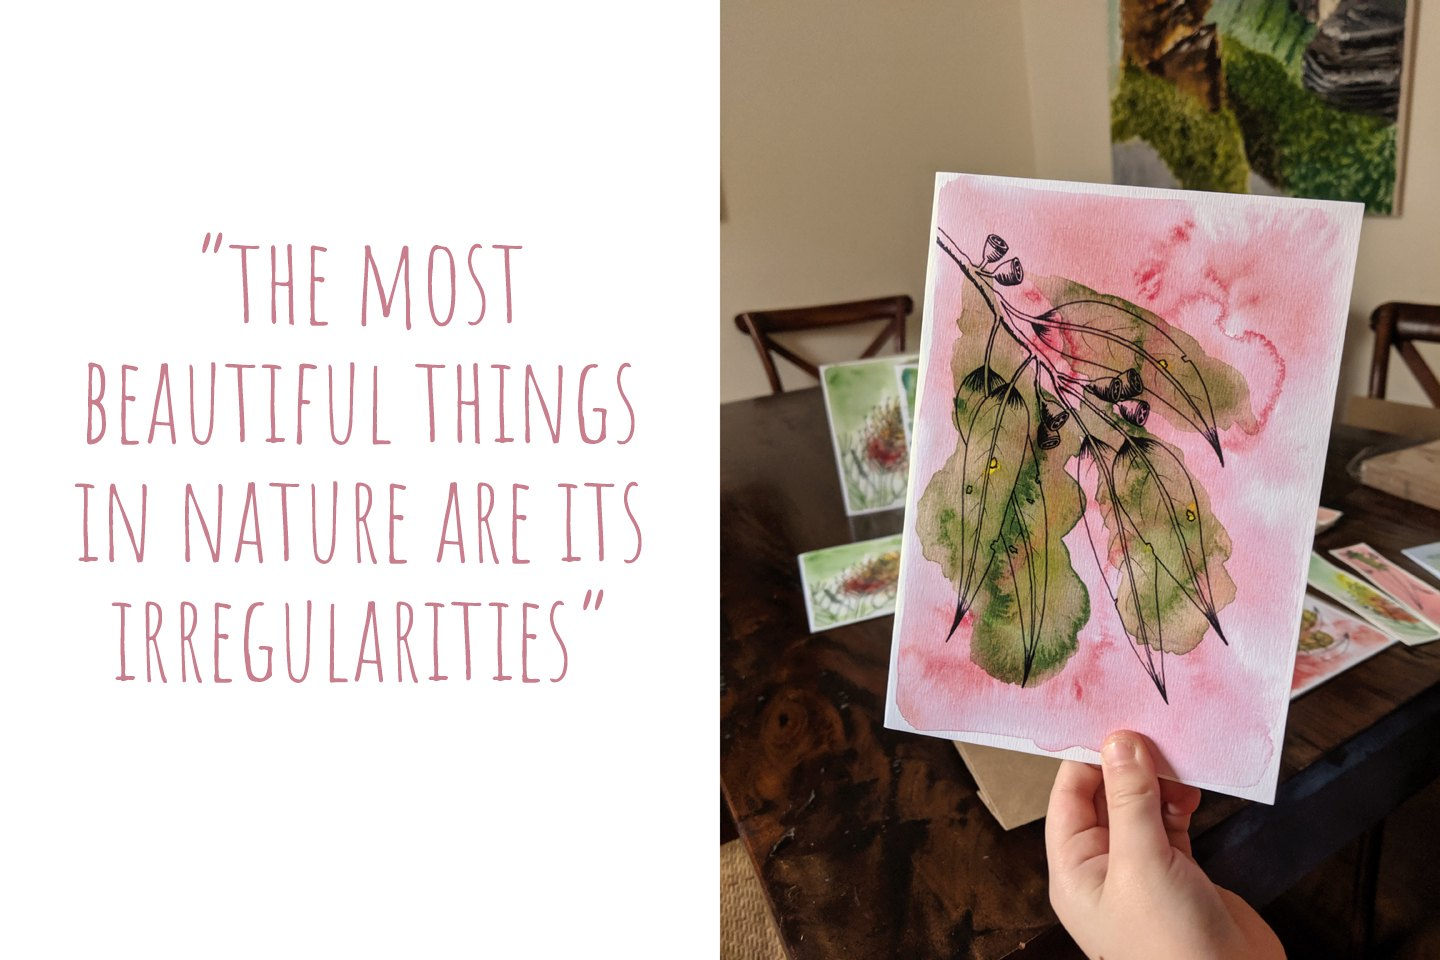 A Kb Handmade Art original gum leaf painting; 'The most beautiful things in nature are its irregularities'